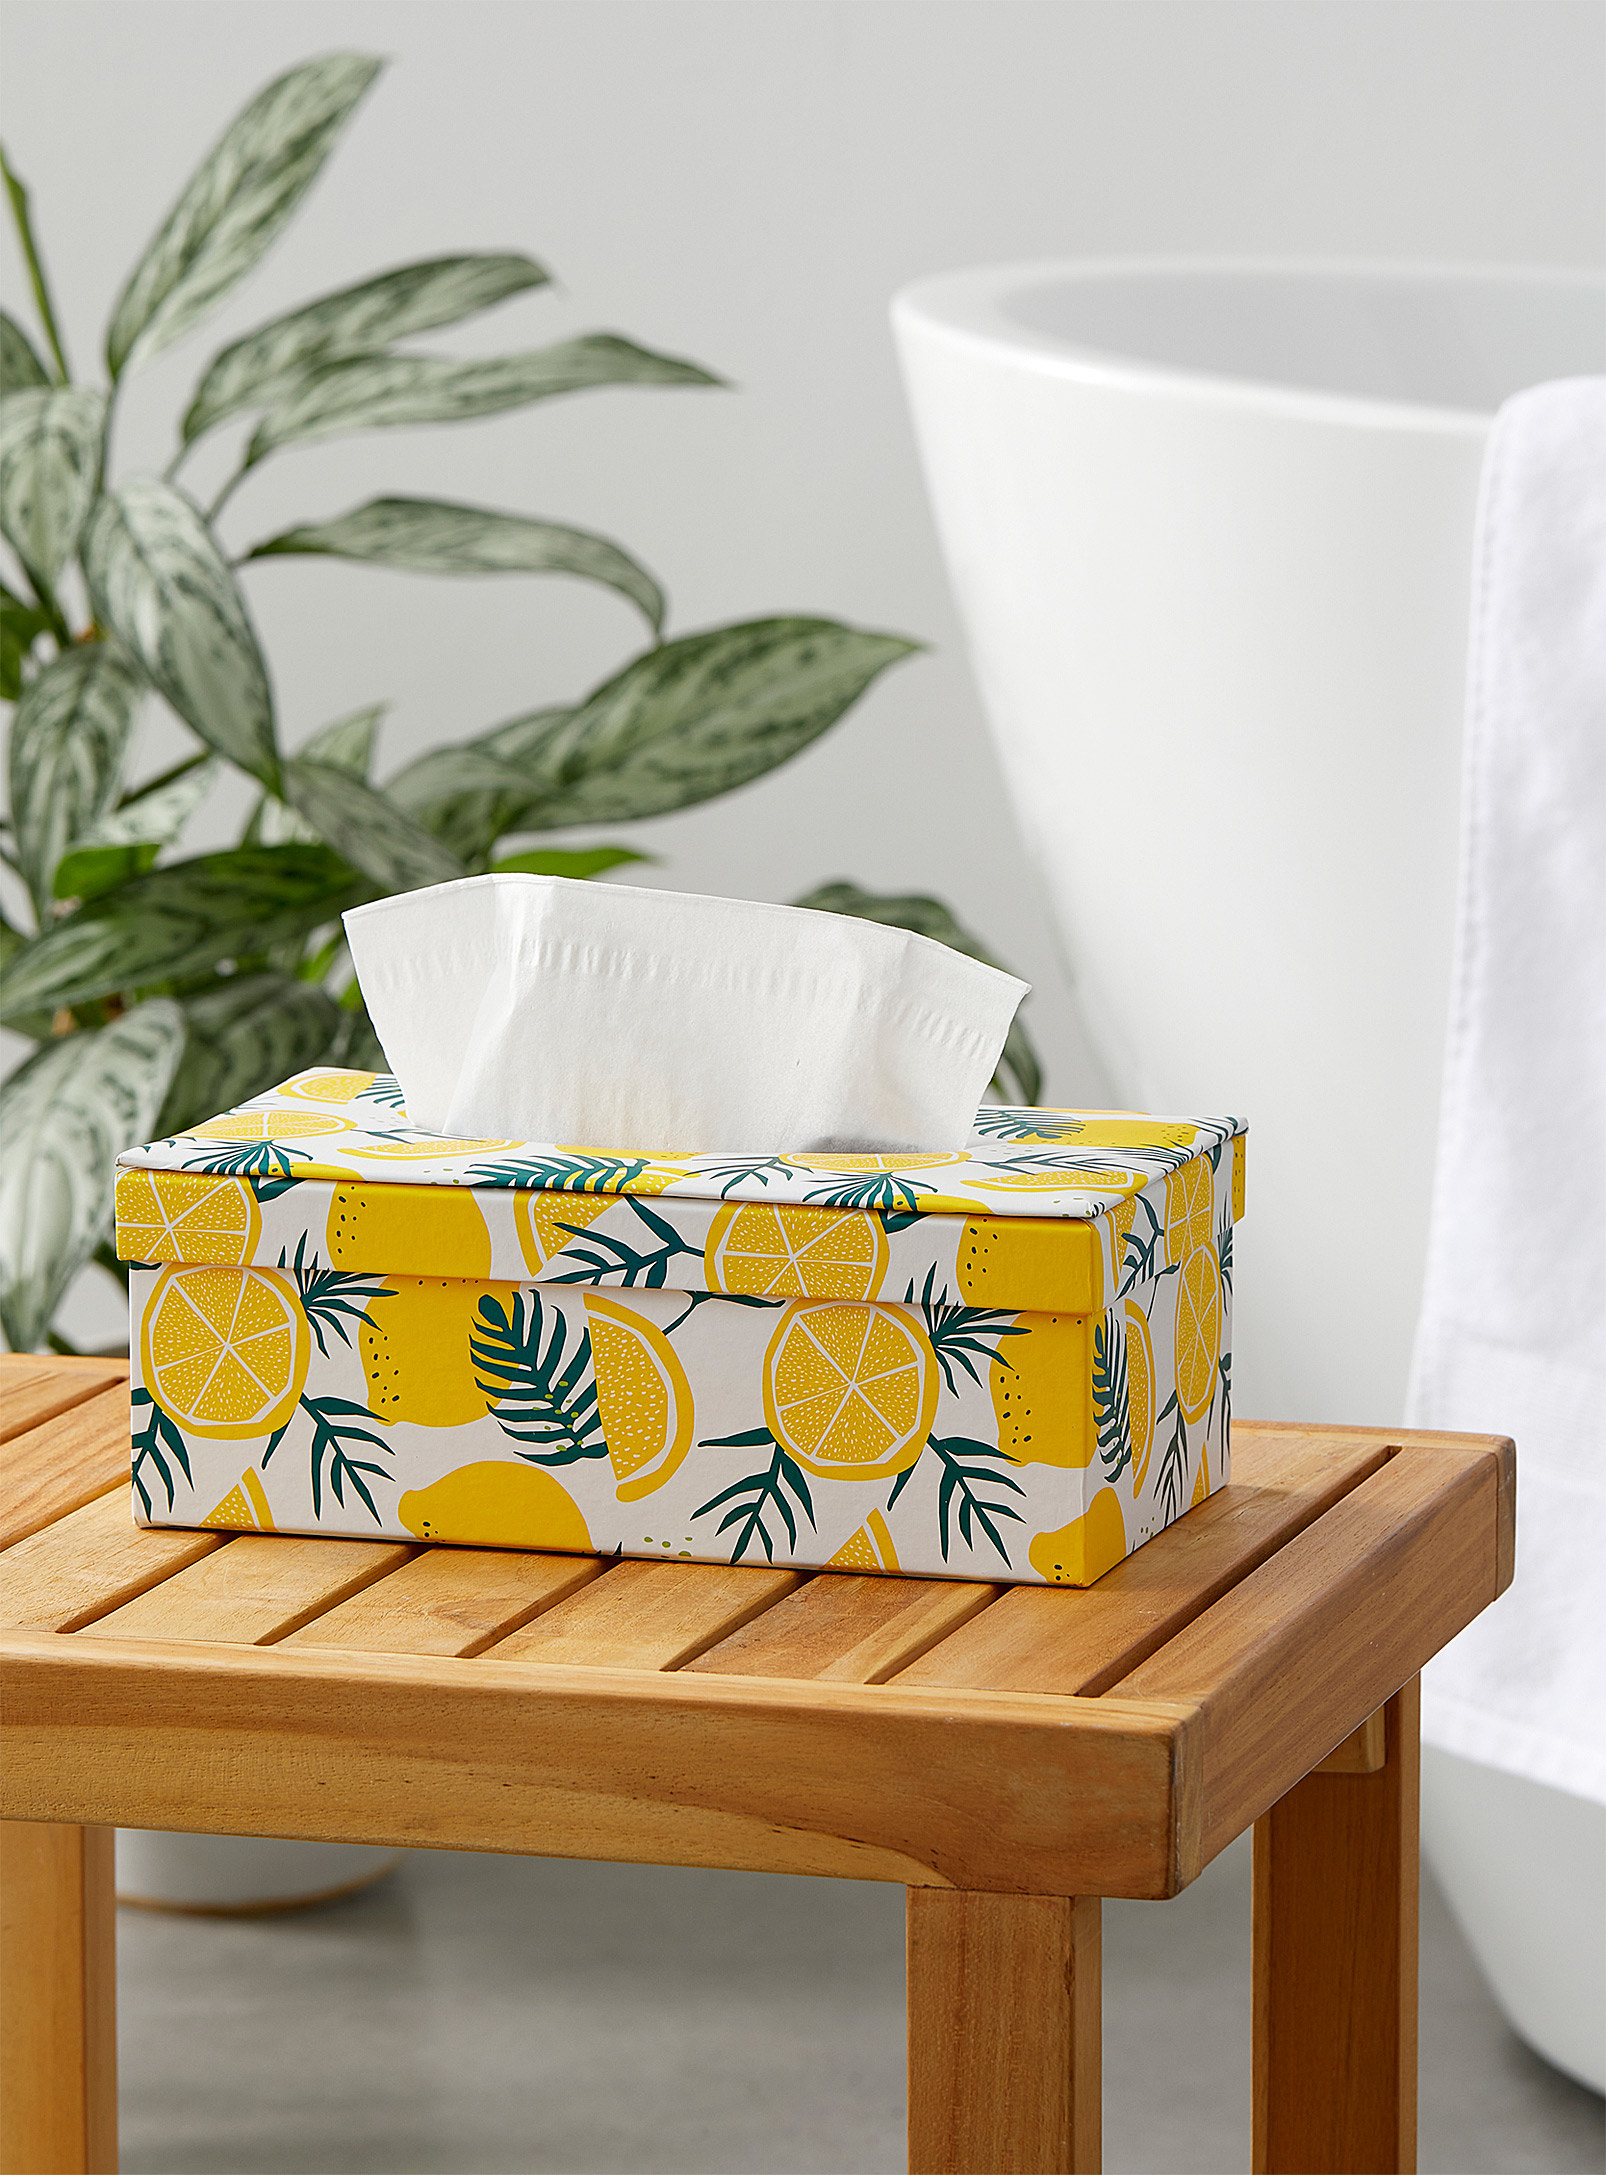 the tissue box on a table